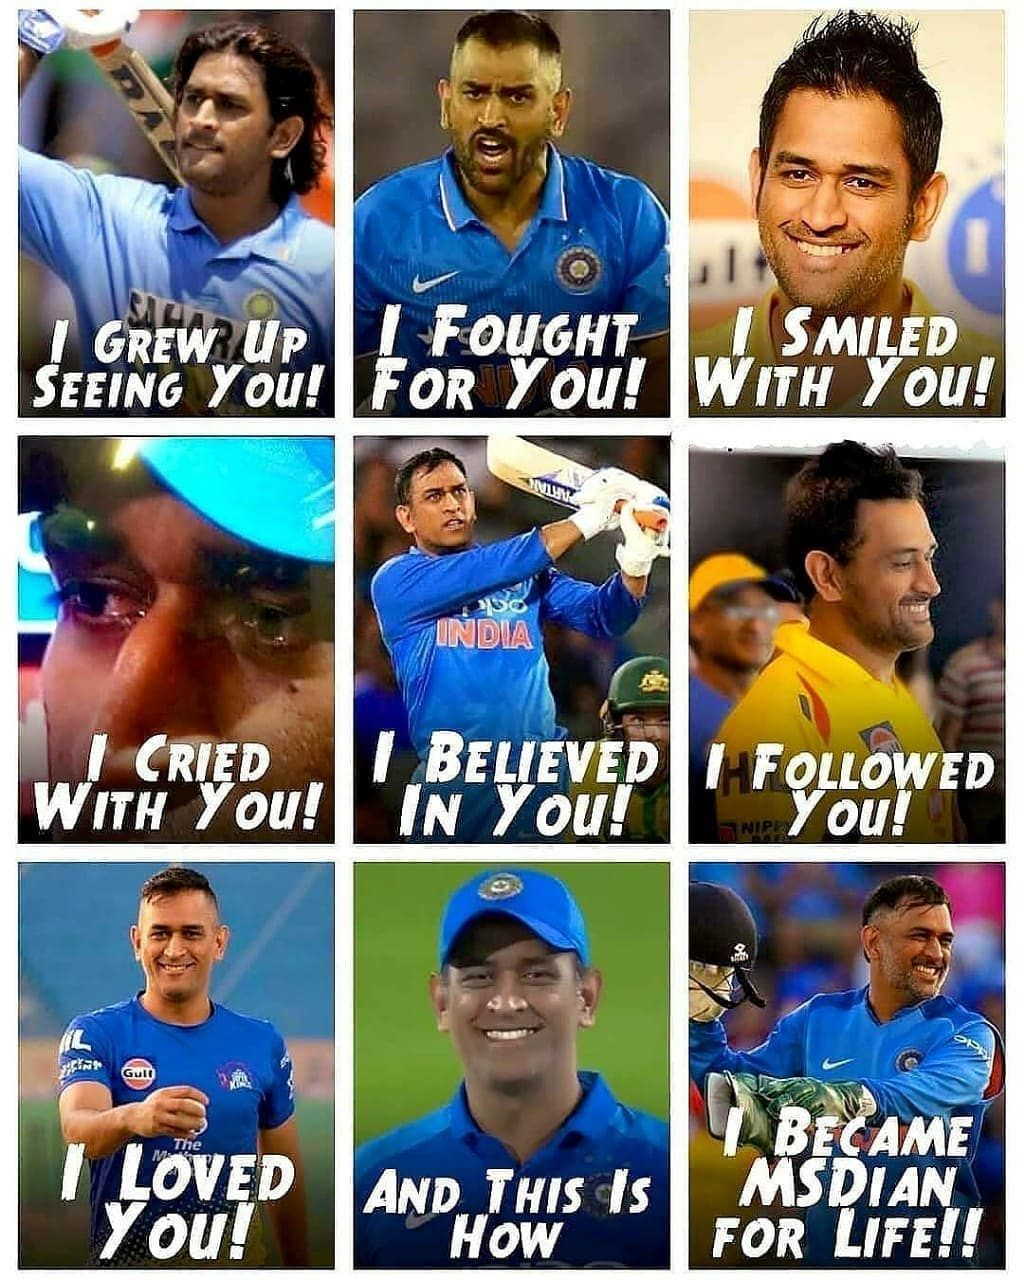 Only MSDhoni fans can relate to this. Sums up our life